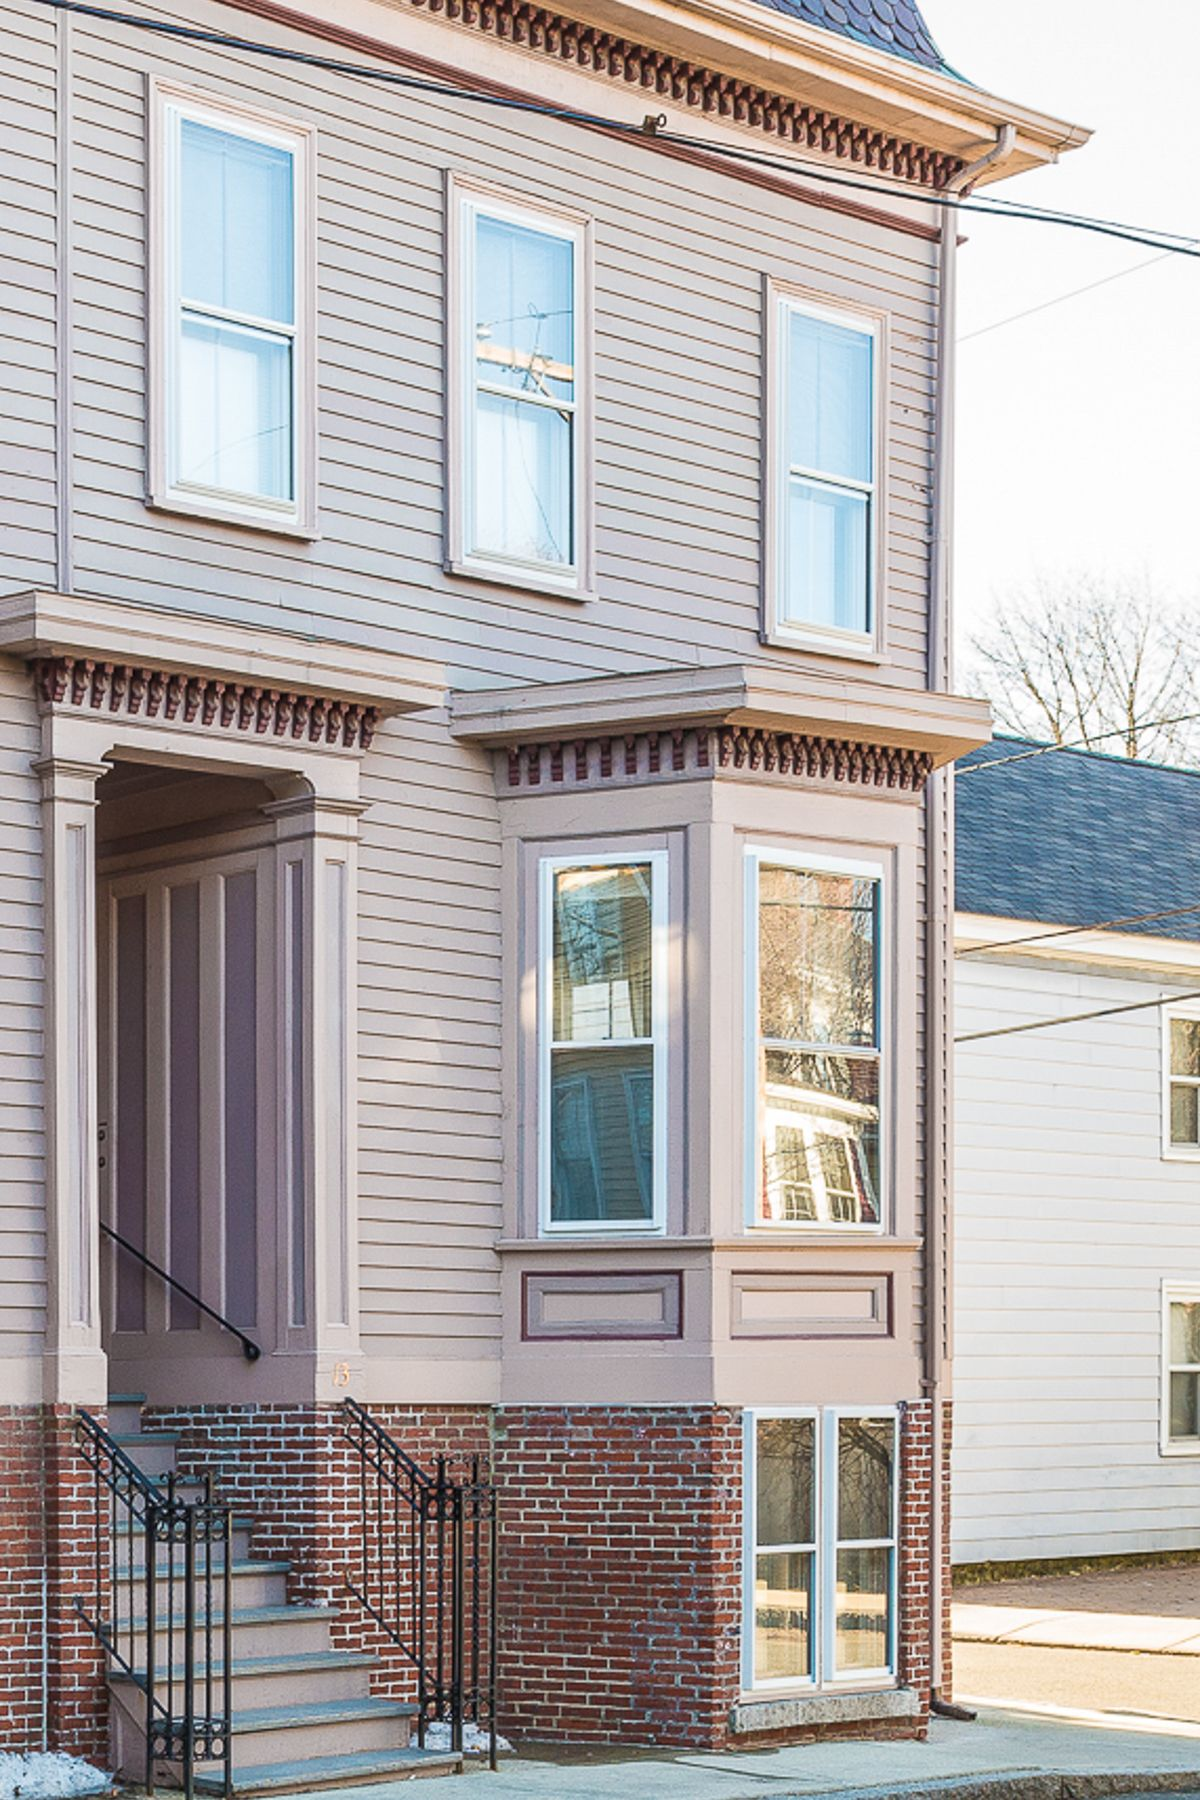 SOLD: 13 North Pine Street Unit 7, Salem, MA, 01970, $274,900; ove right into this bright and sunny 2 BR 1.5 bath home in Salem's world renown McIntire District. The updated kitchen with eat-at breakfast bar opens to a sun filled dining room with a private deck. This corner unit also features high ceilings, hardwood floors, exposed brick, large windows and in-unit laundry. You will appreciate the character, detail and workmanship in this unit. Location, lifestyle and parking.